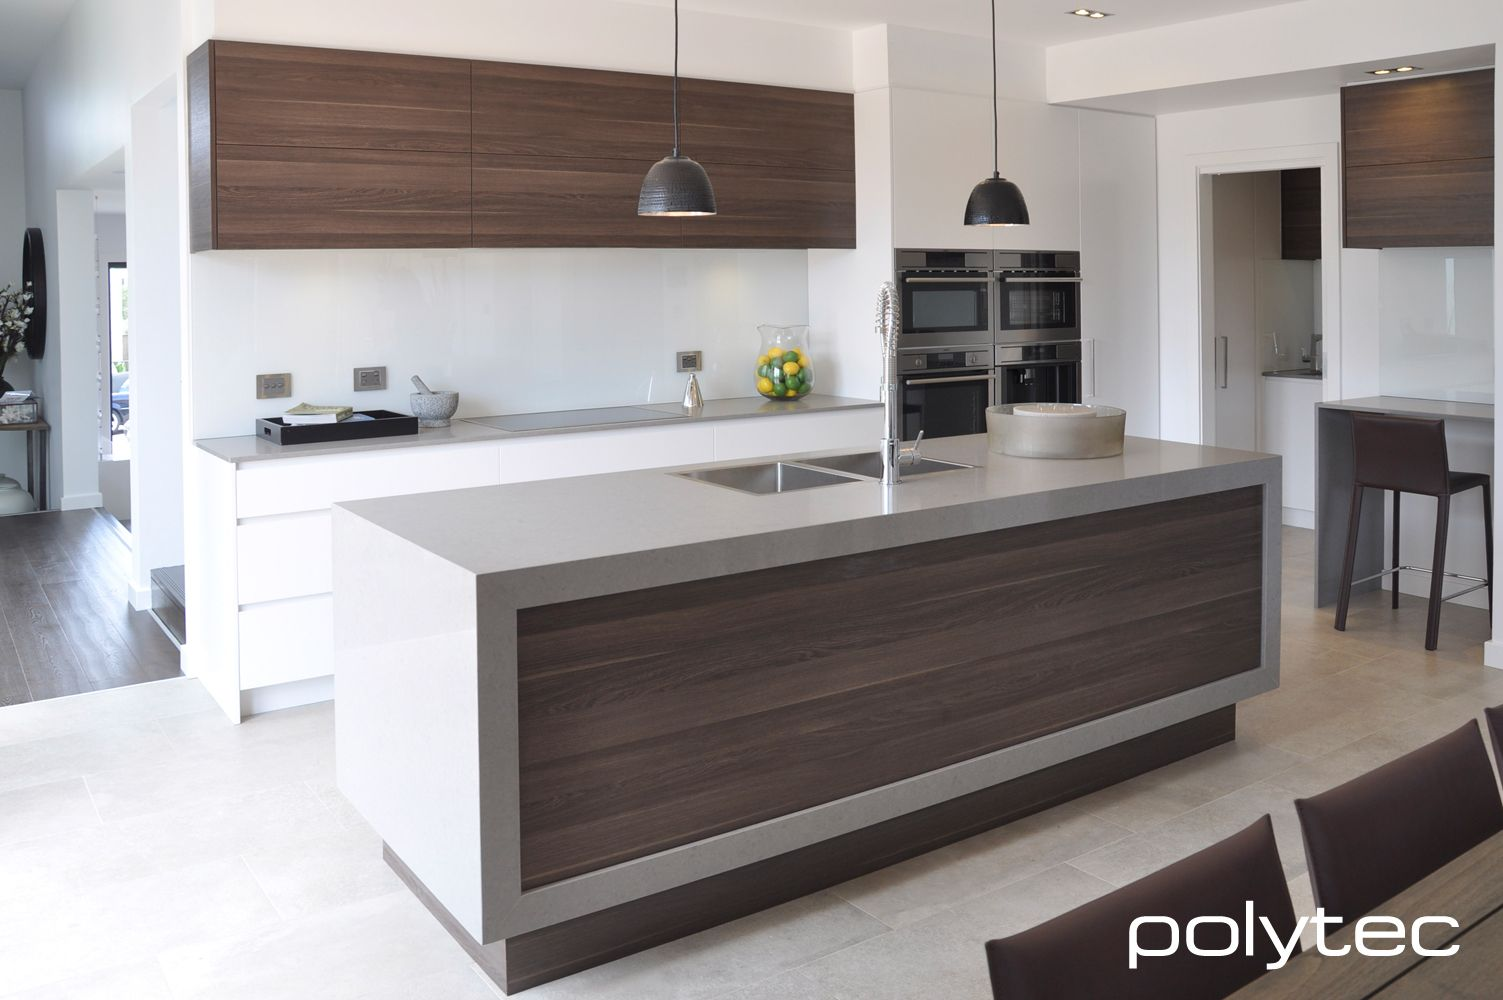 Polytec Doors and panels in Melamine Cafe Oak & Polytec Doors and panels in Melamine Cafe Oak | Arch (Kitchen Ideas ...